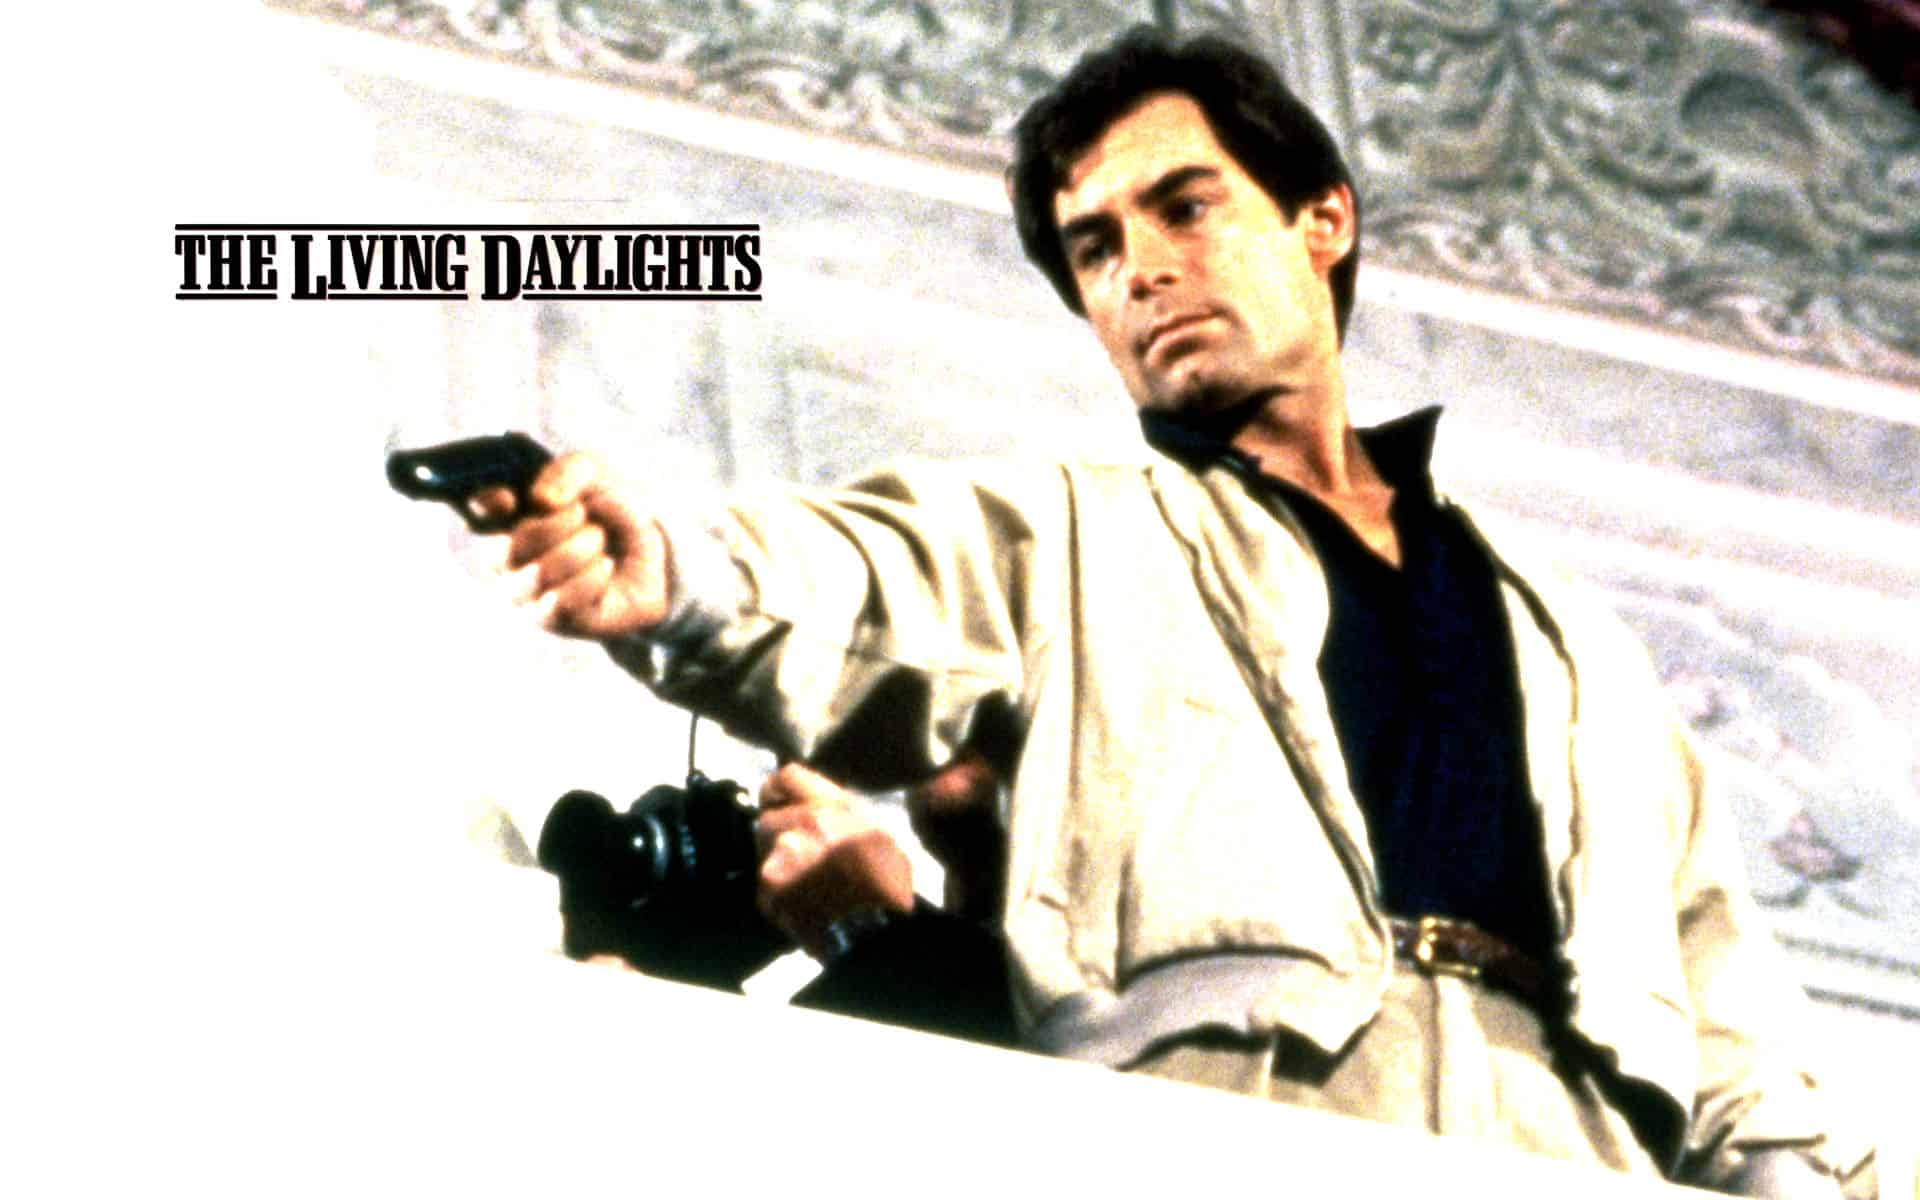 007-the-living-daylights-wallpapers-007